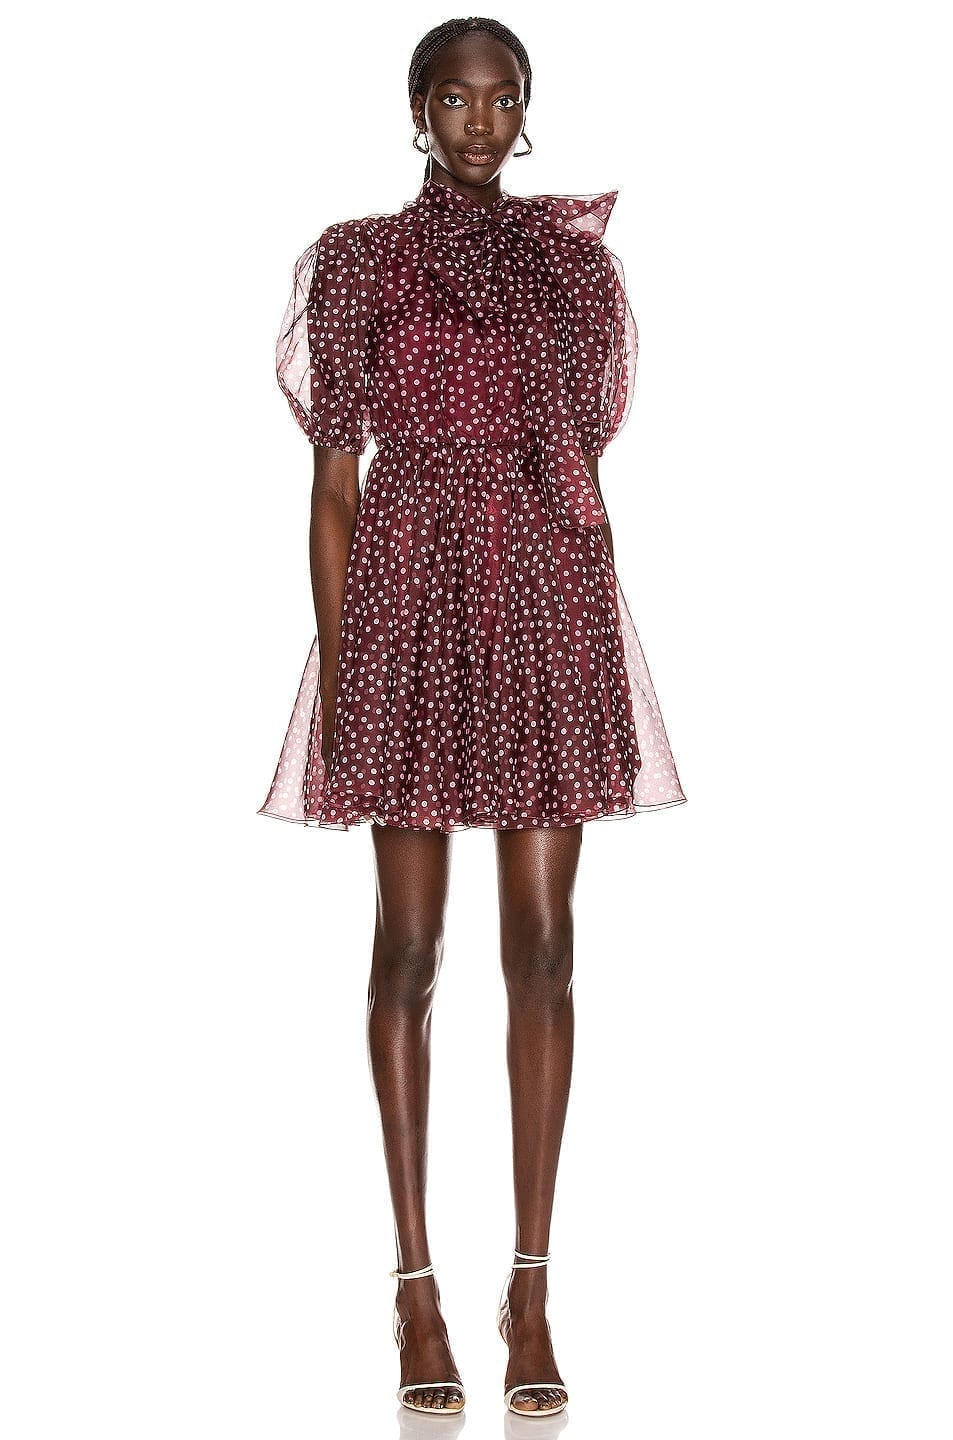 DOLCE & GABBANA Tie Polka Dot Mini Dress